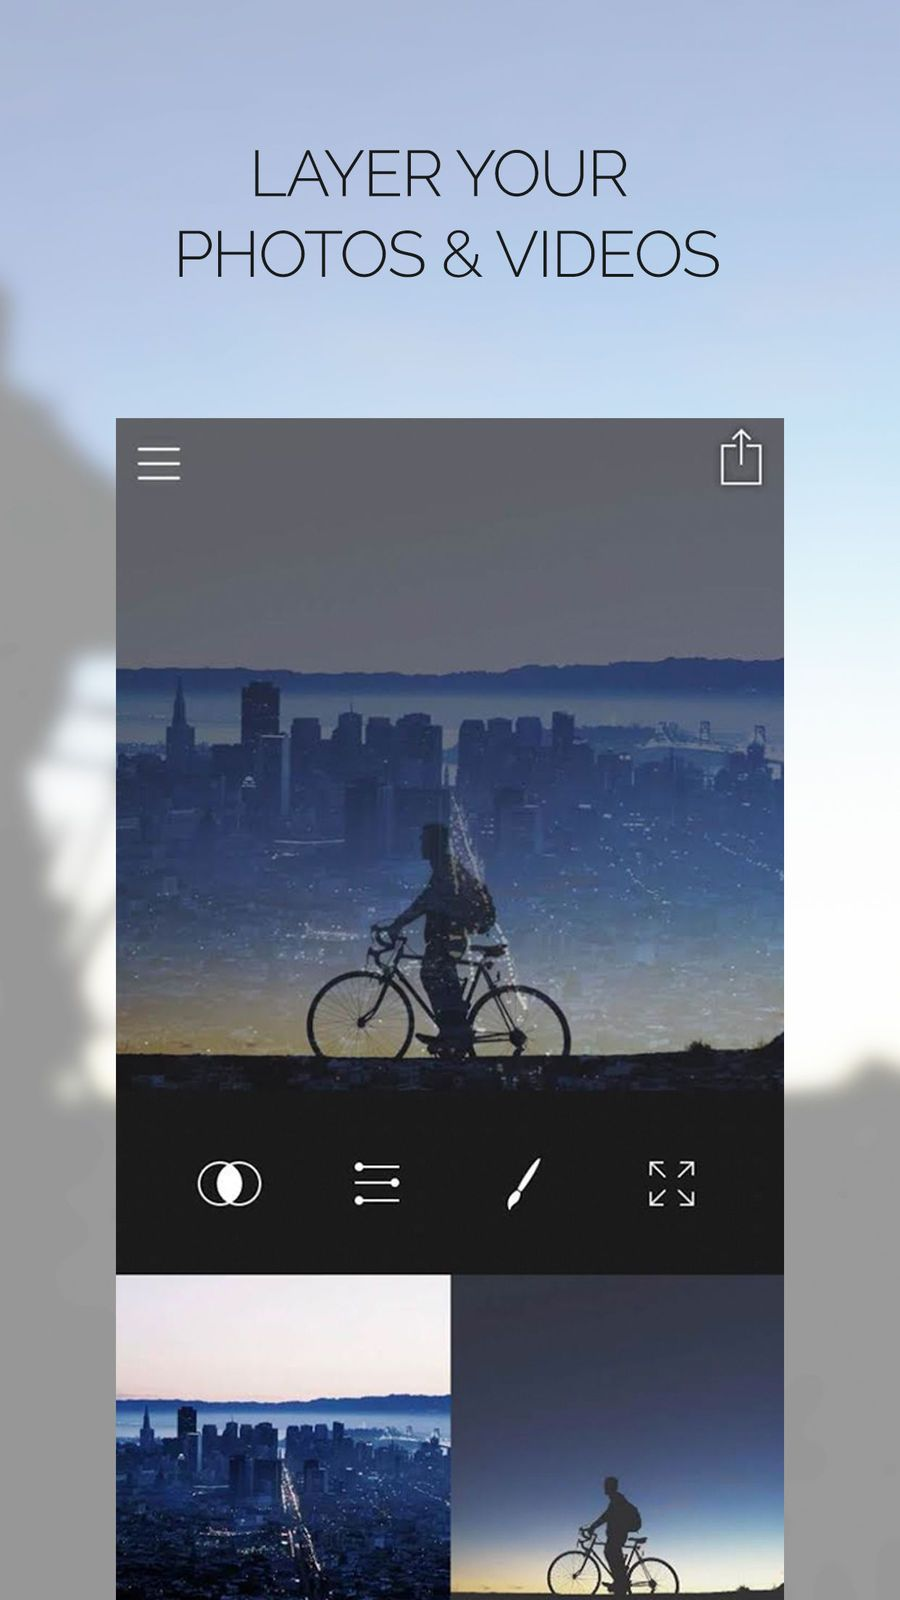 Fused: Overlay Photo And Video #Apps#Tiger#LLC#Entertainment